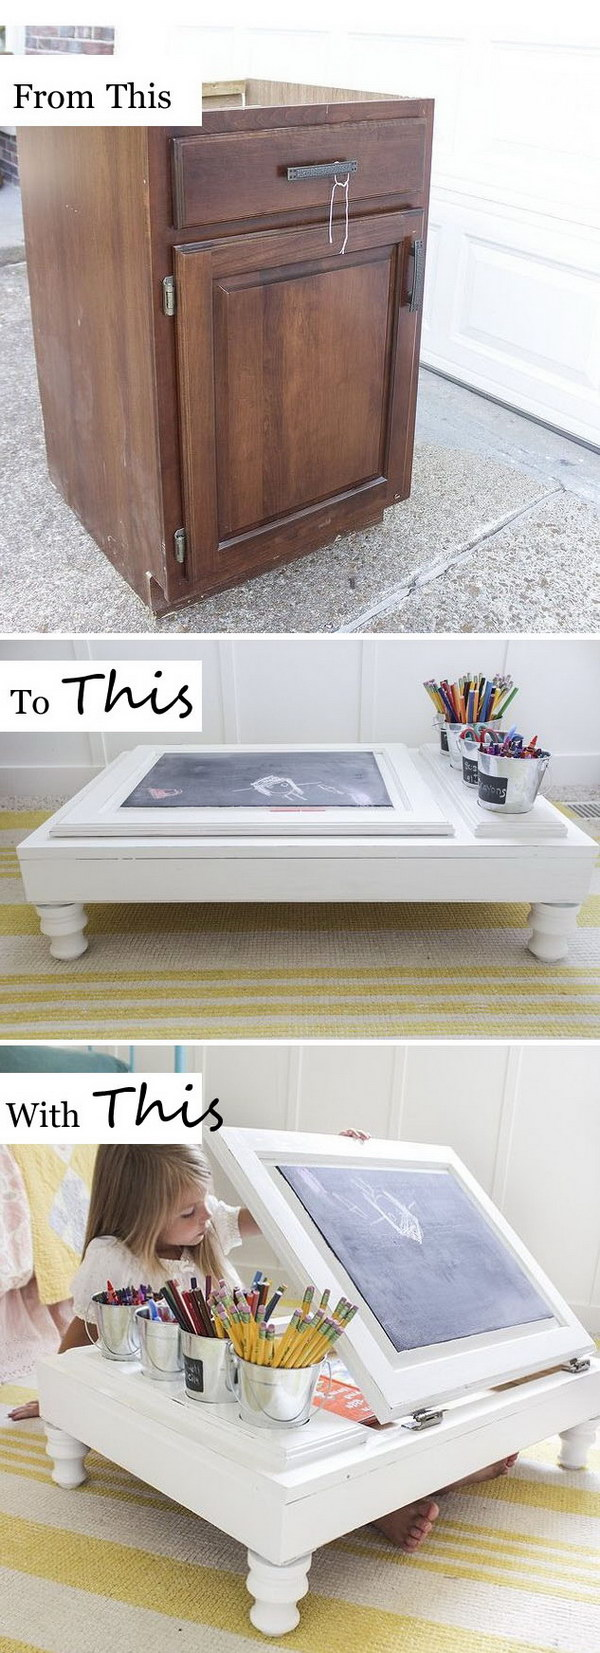 Turn a Kitchen Cabinet Into a Child's Desk.